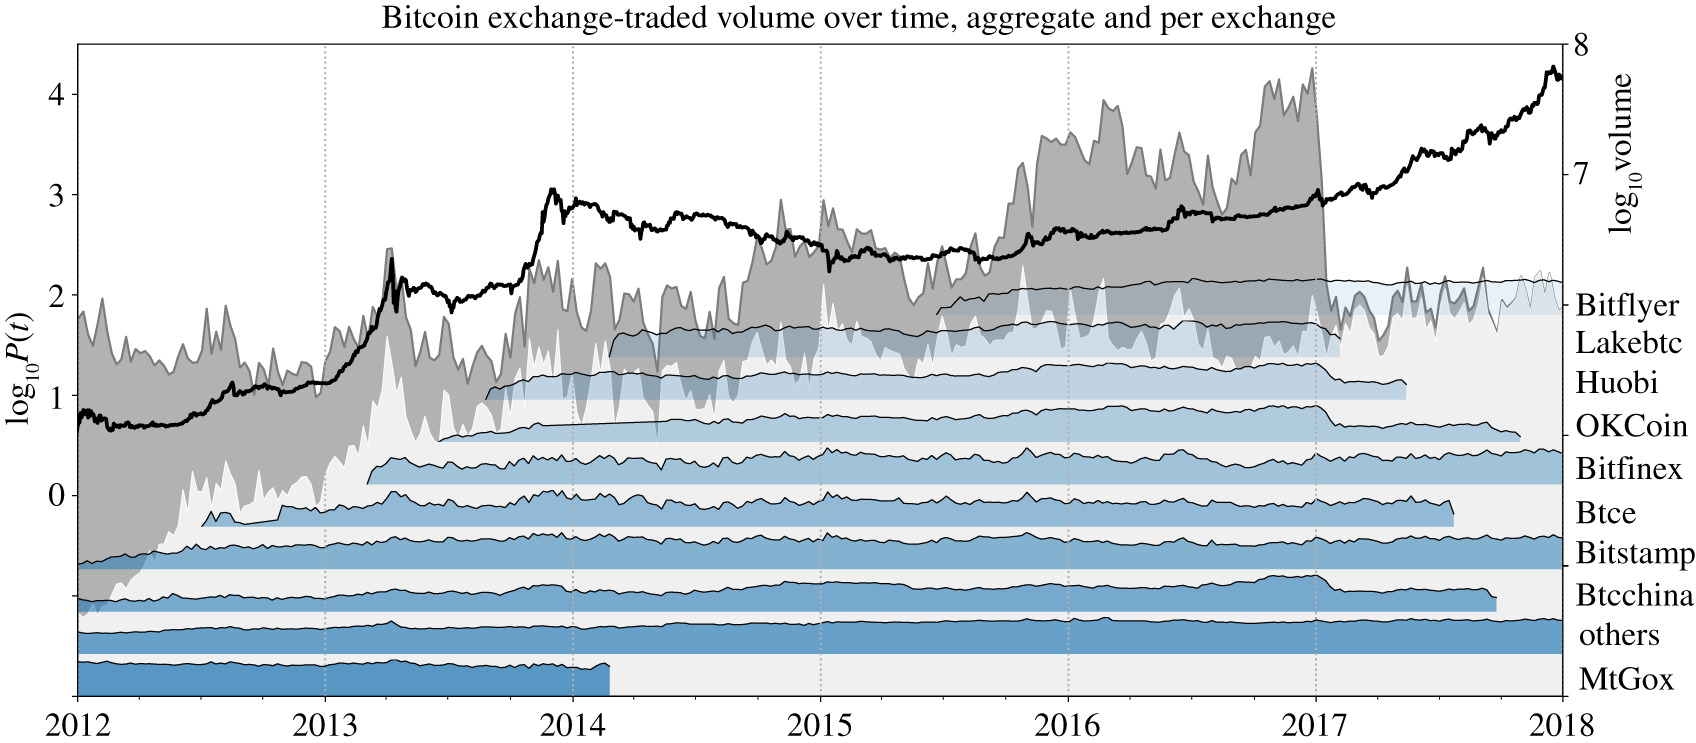 Dissection of Bitcoin's multiscale bubble history from